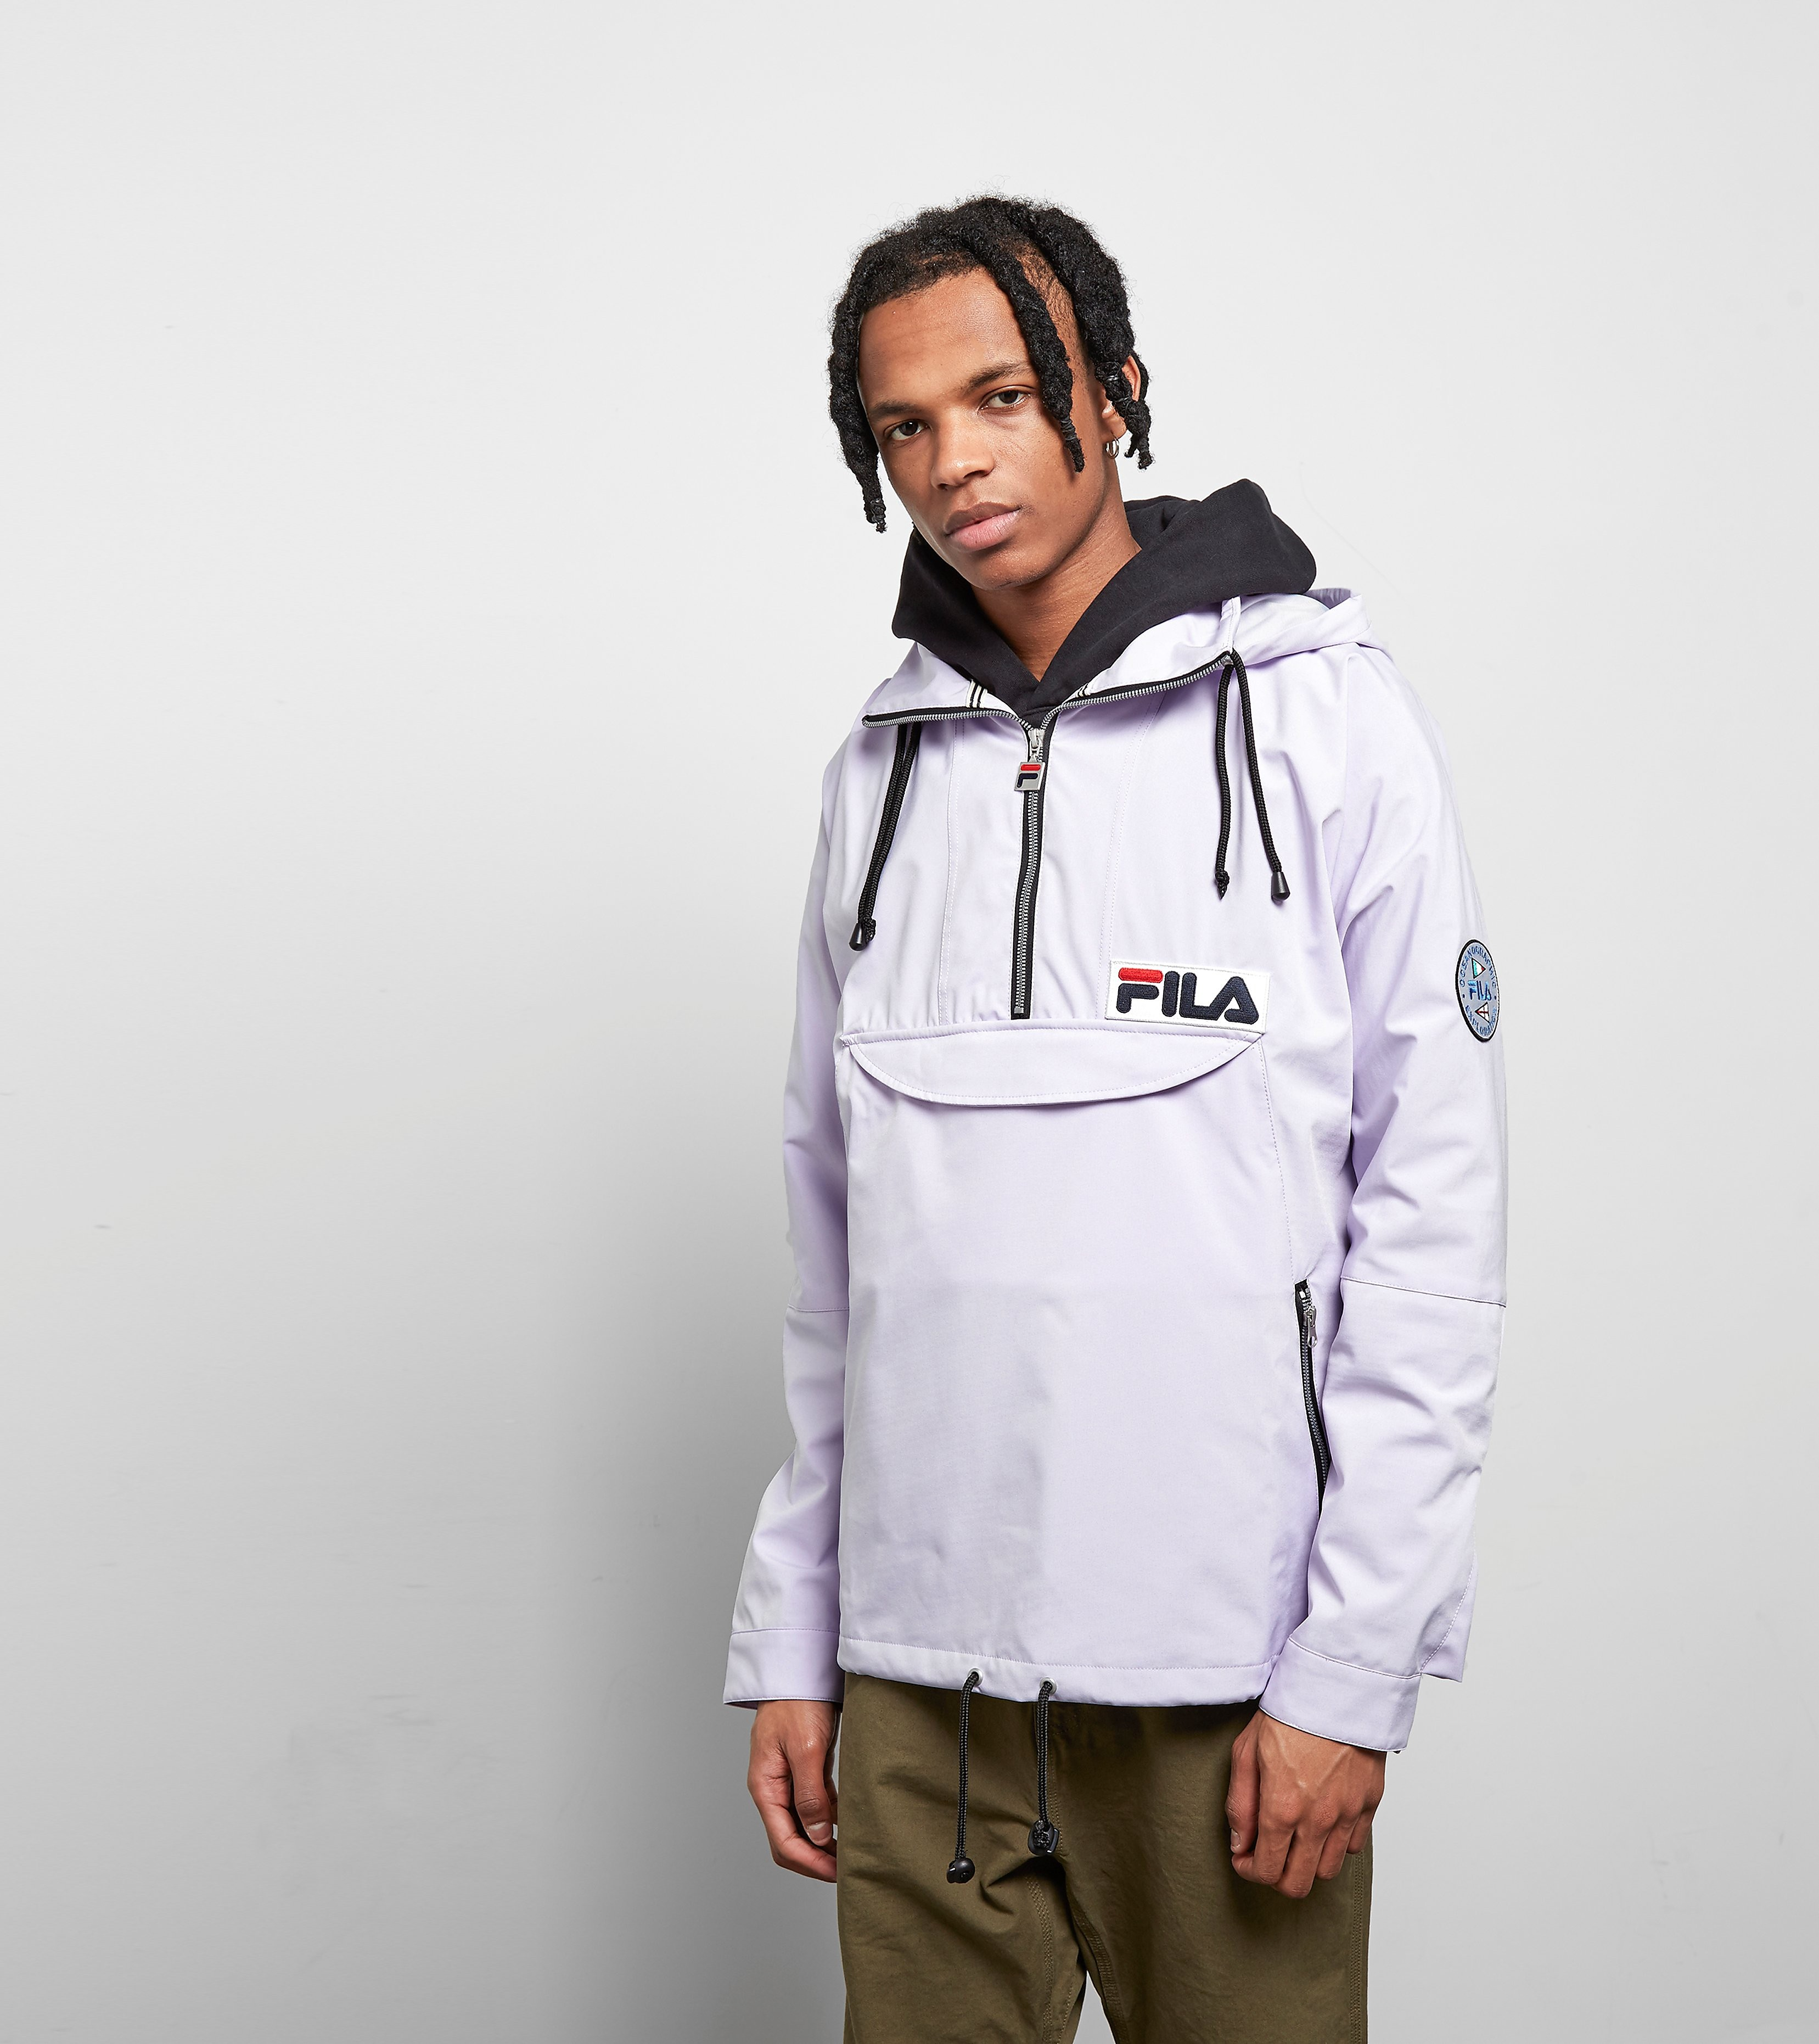 Fila Kaiten Jacket - size? Exclusive